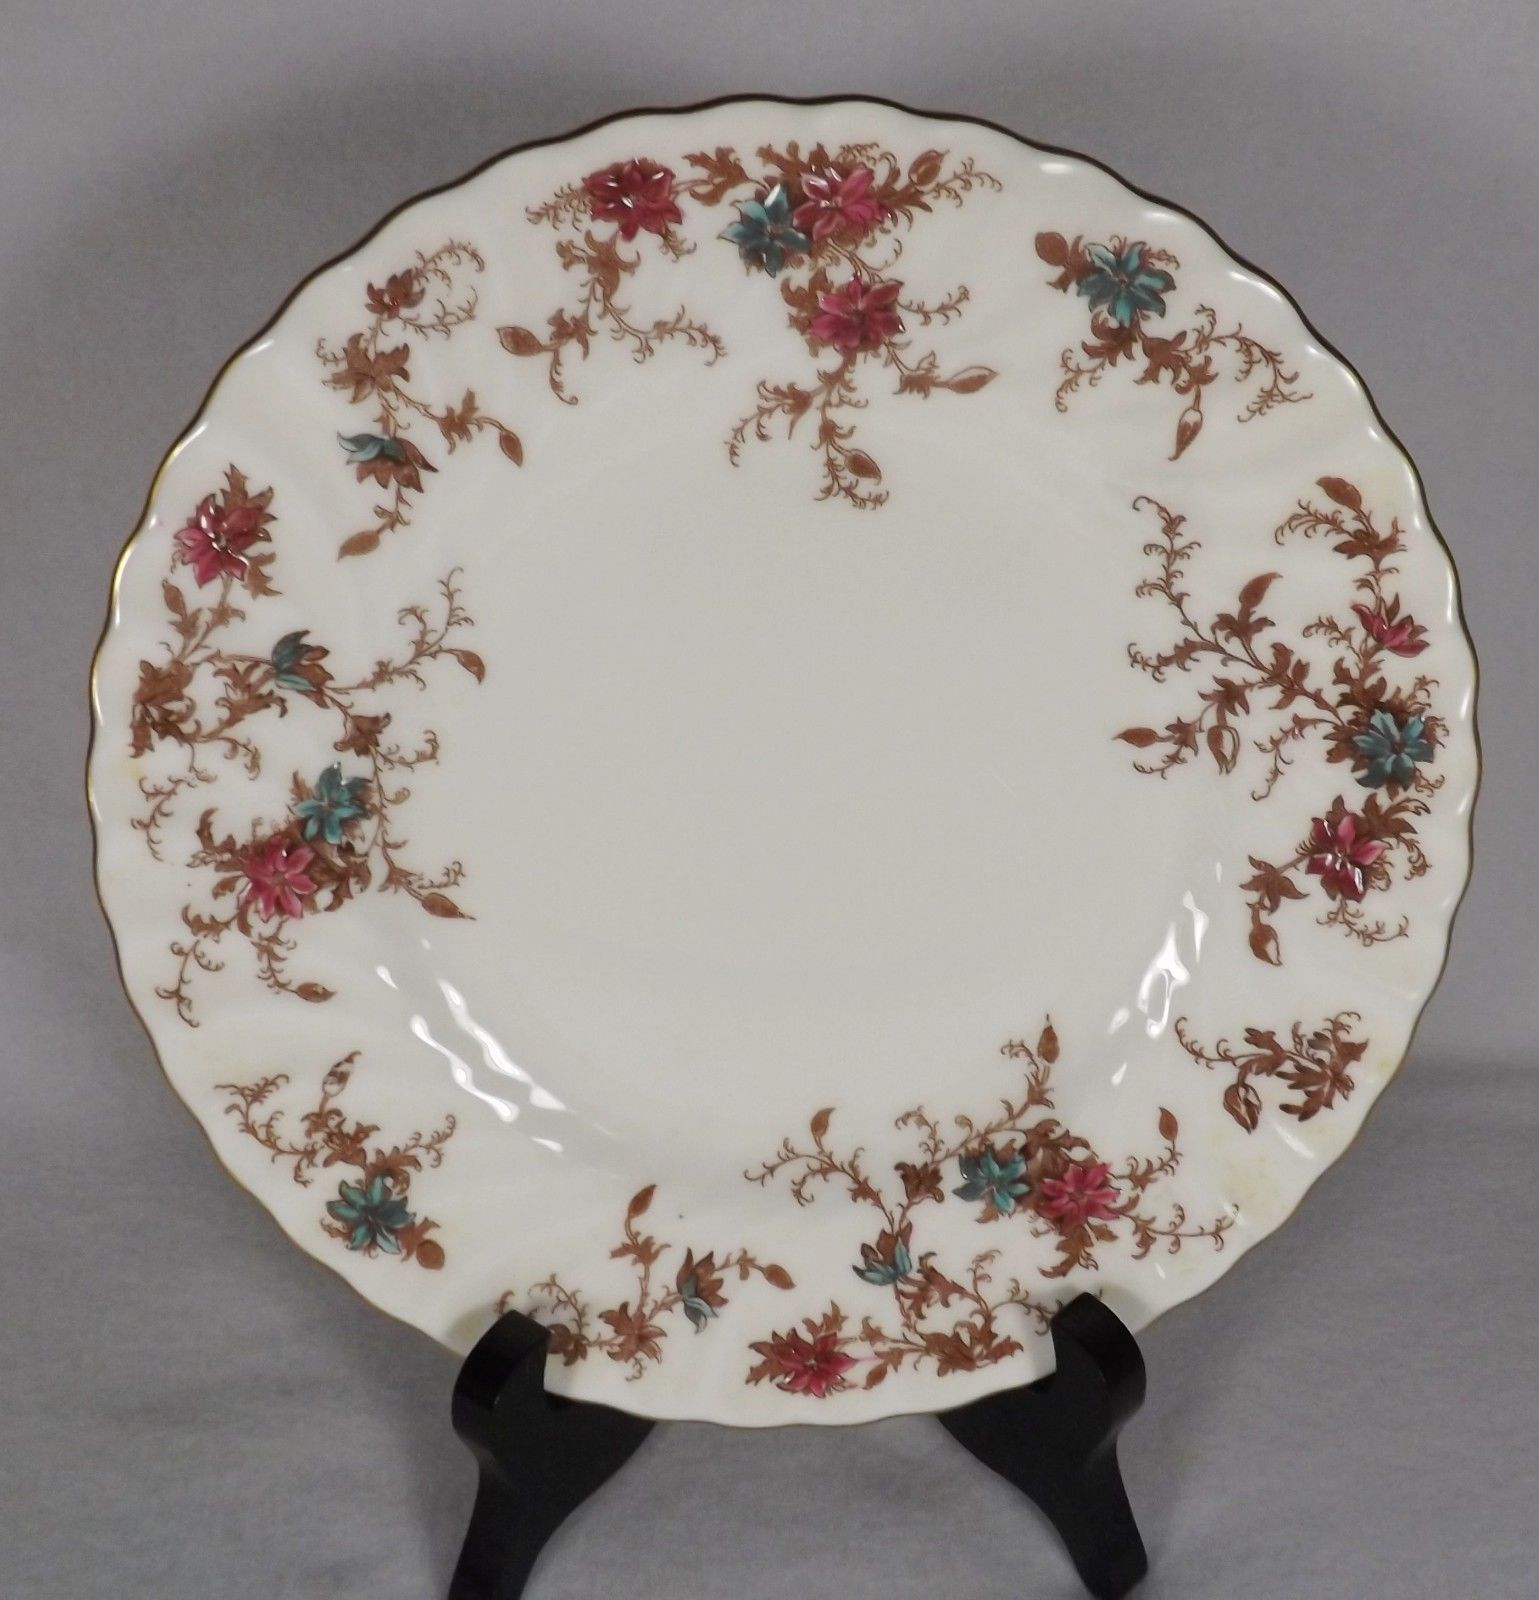 3 Tier Vintage Floral Ceramic Cake Stand Cupcake WLSding Plate Party Handle X8J2